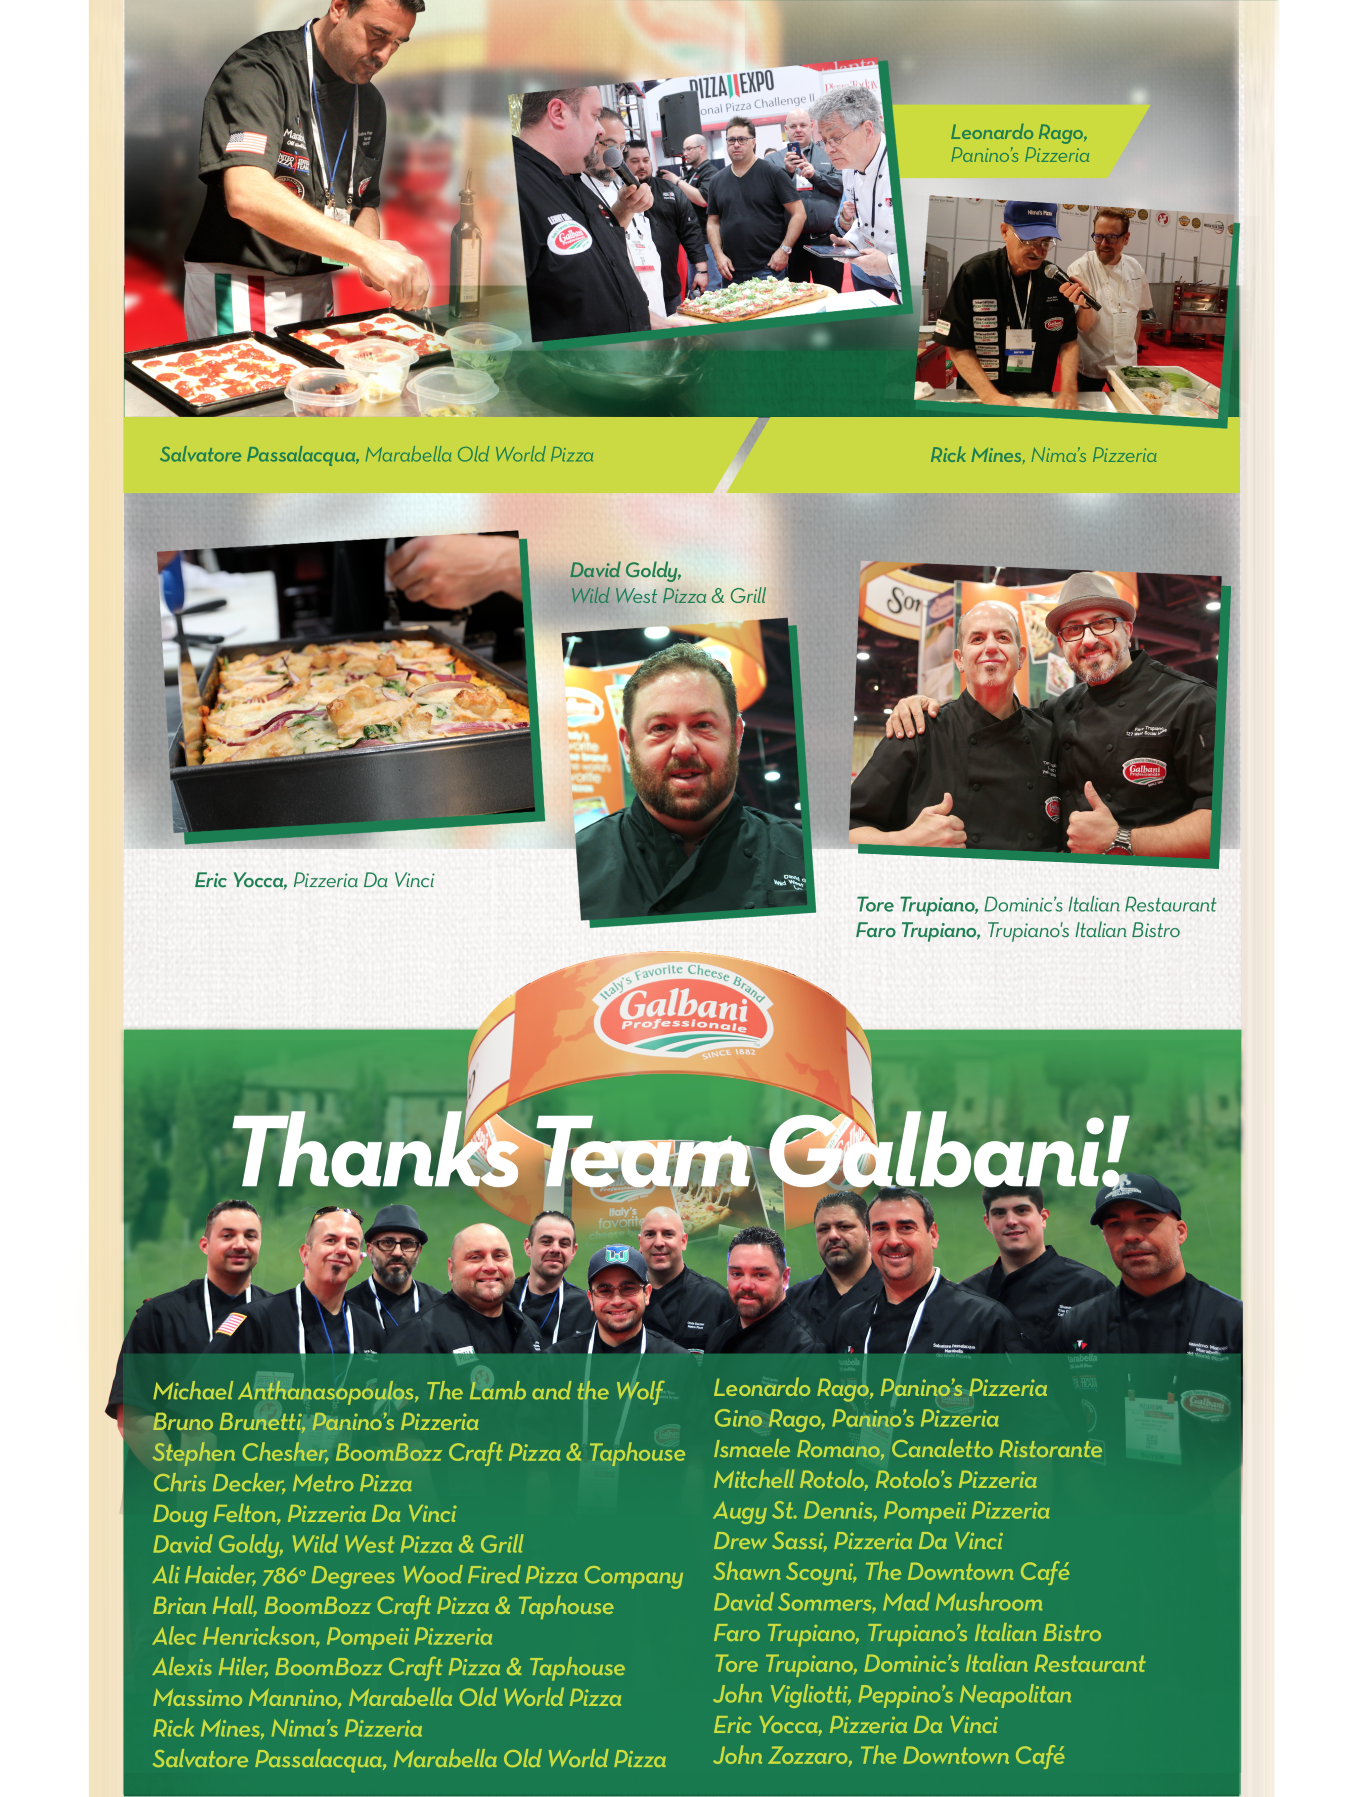 Thanks Team Galbani!